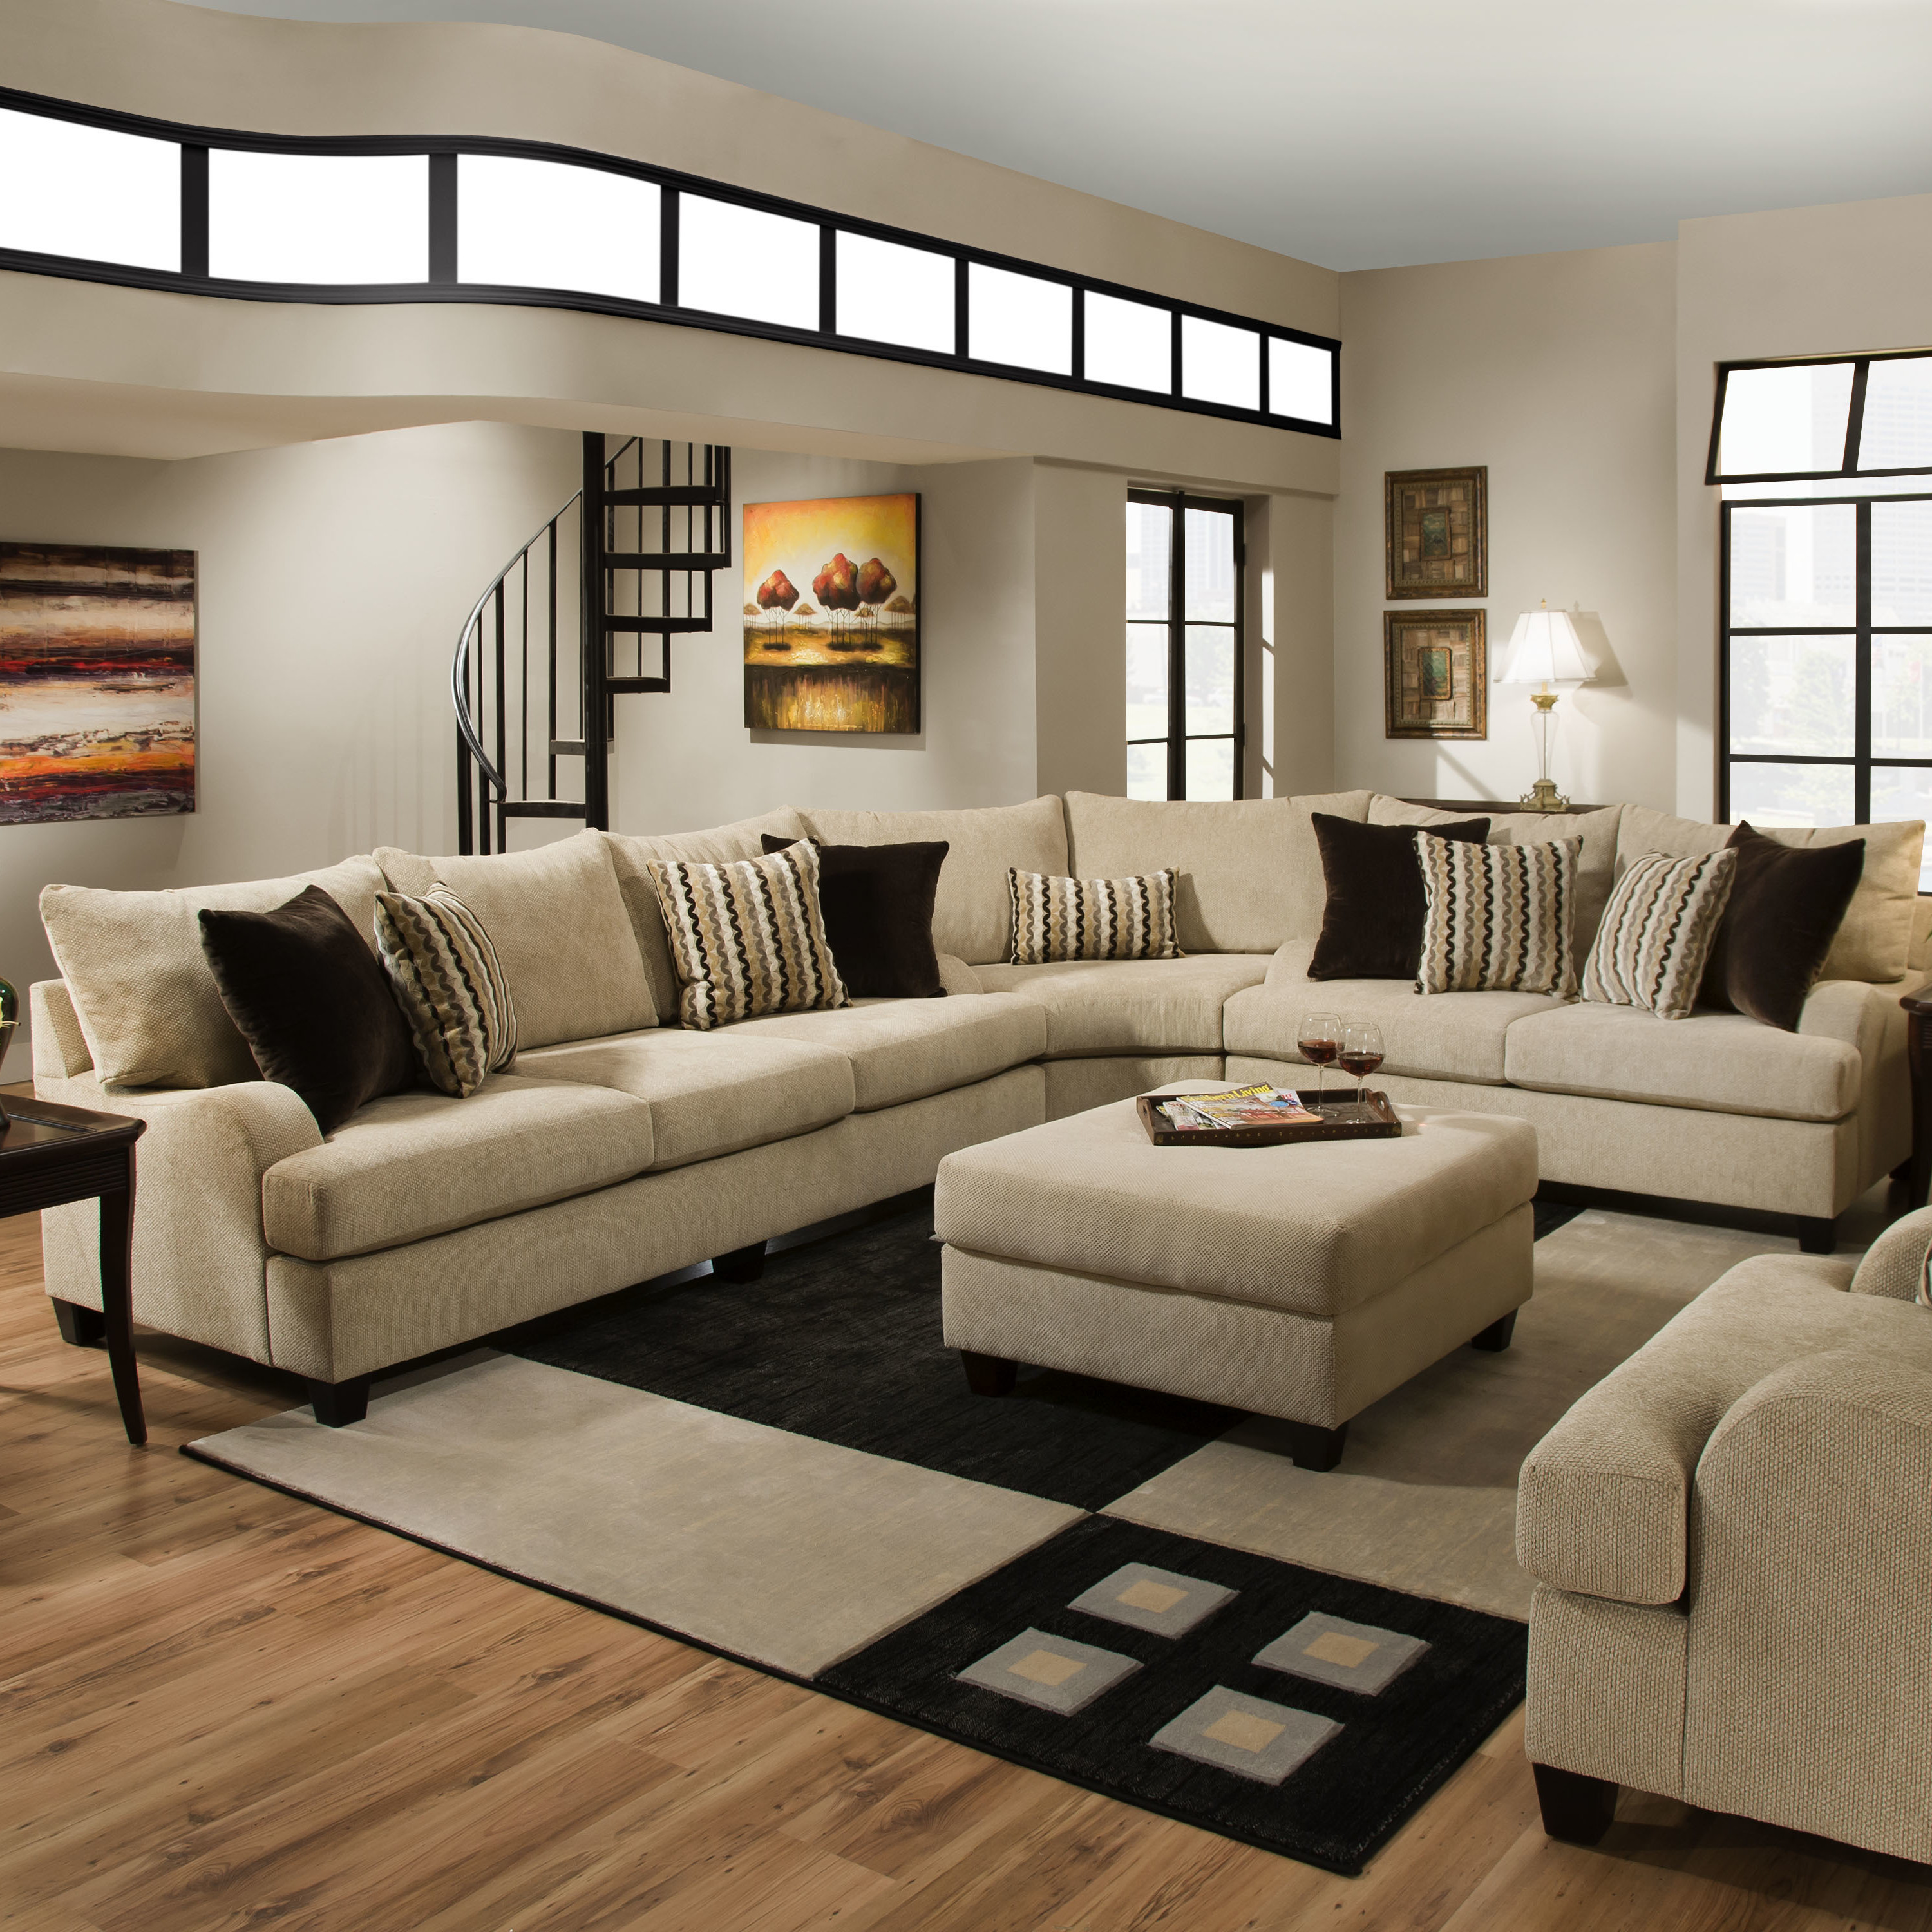 Simmons Living Room Furniture. Trinidad Sectional by Simmons  Genesis Furniture